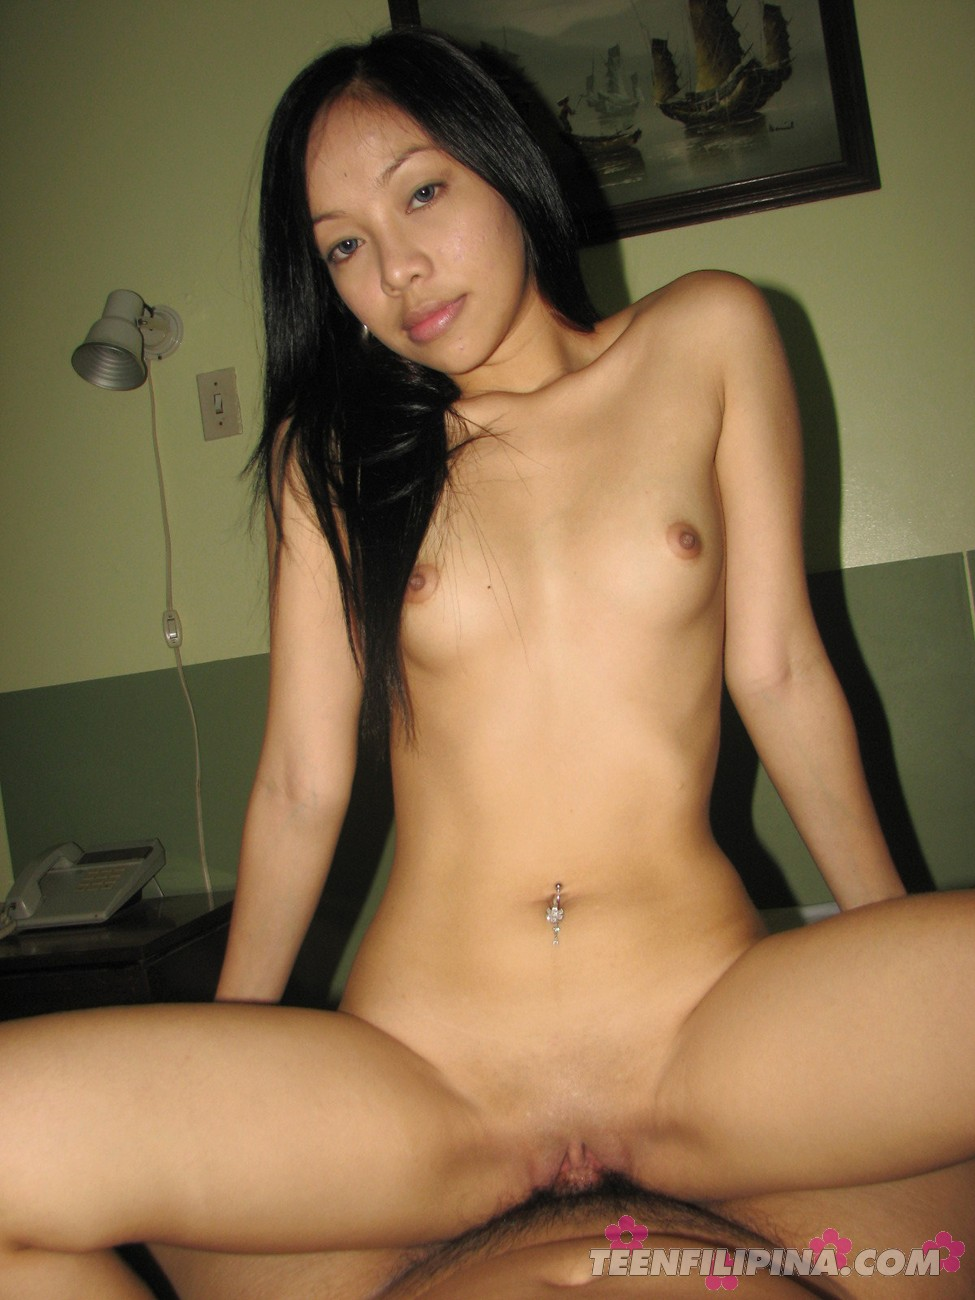 Small Breasted Girl In Action  Asian Porn Photos-2659